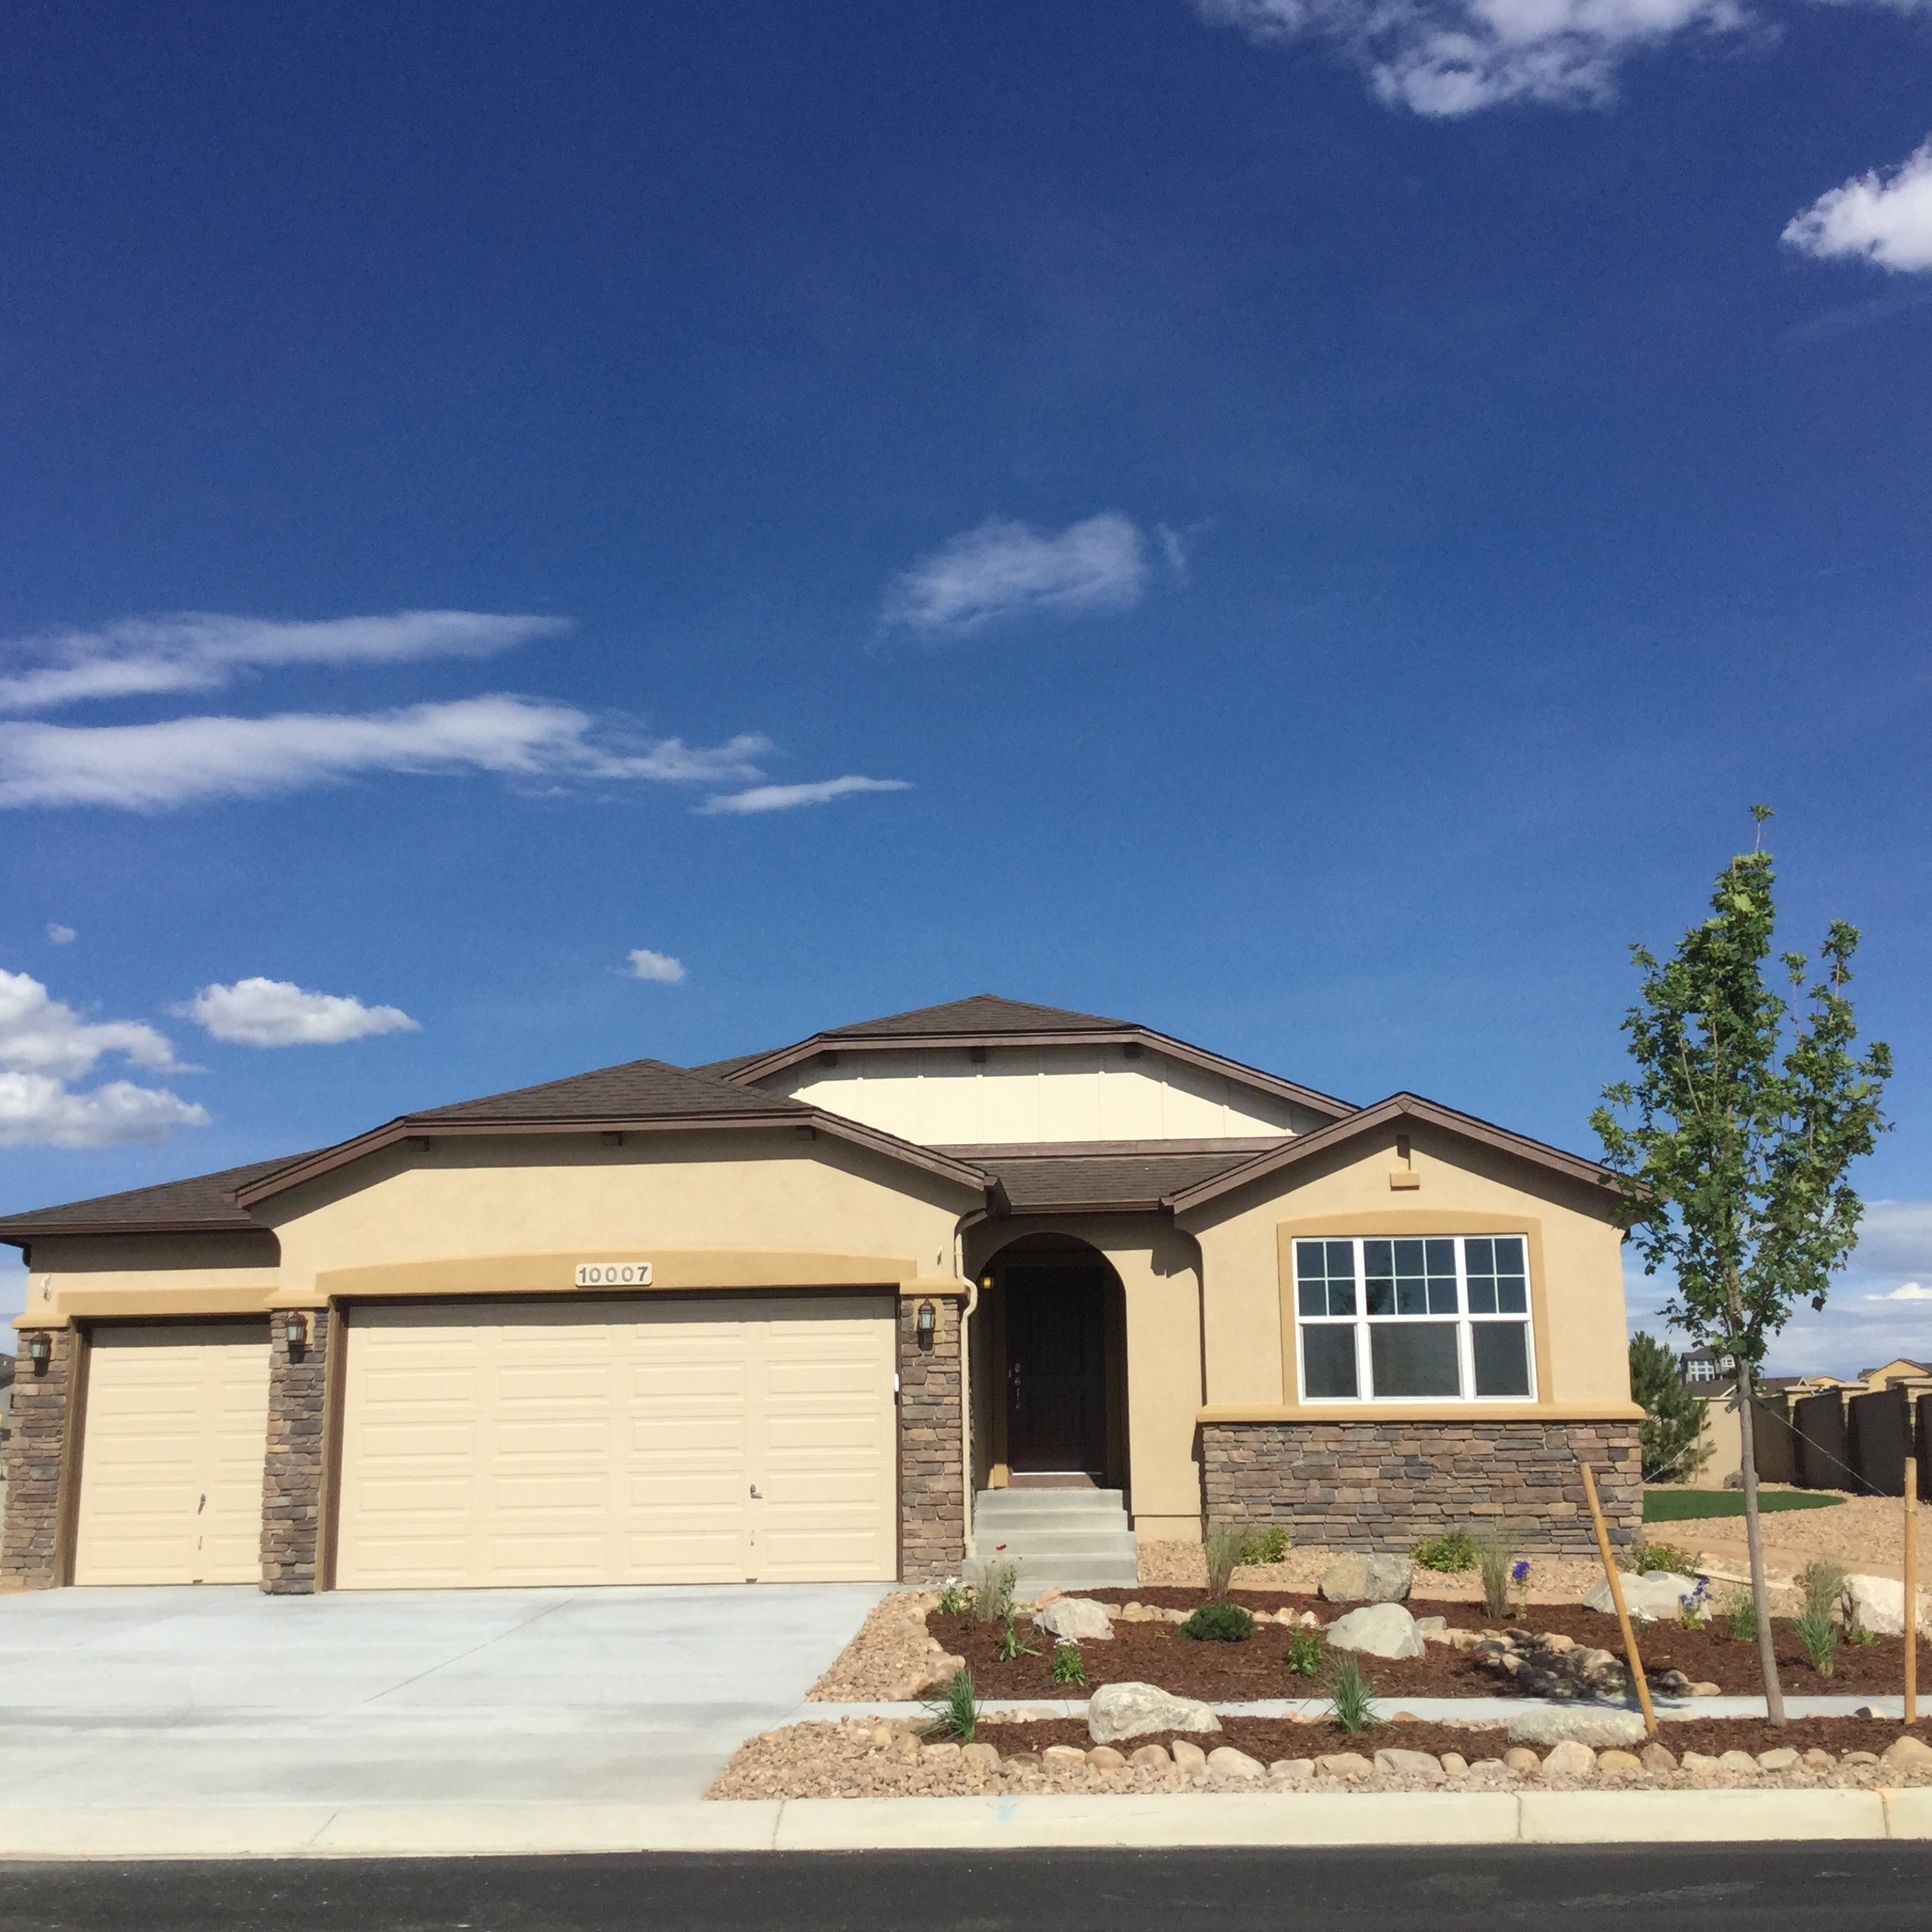 The Ellingwood - Ranch Home:Spacious ranch home with 5 bedrooms, flex space and open main level. (Photo of model)